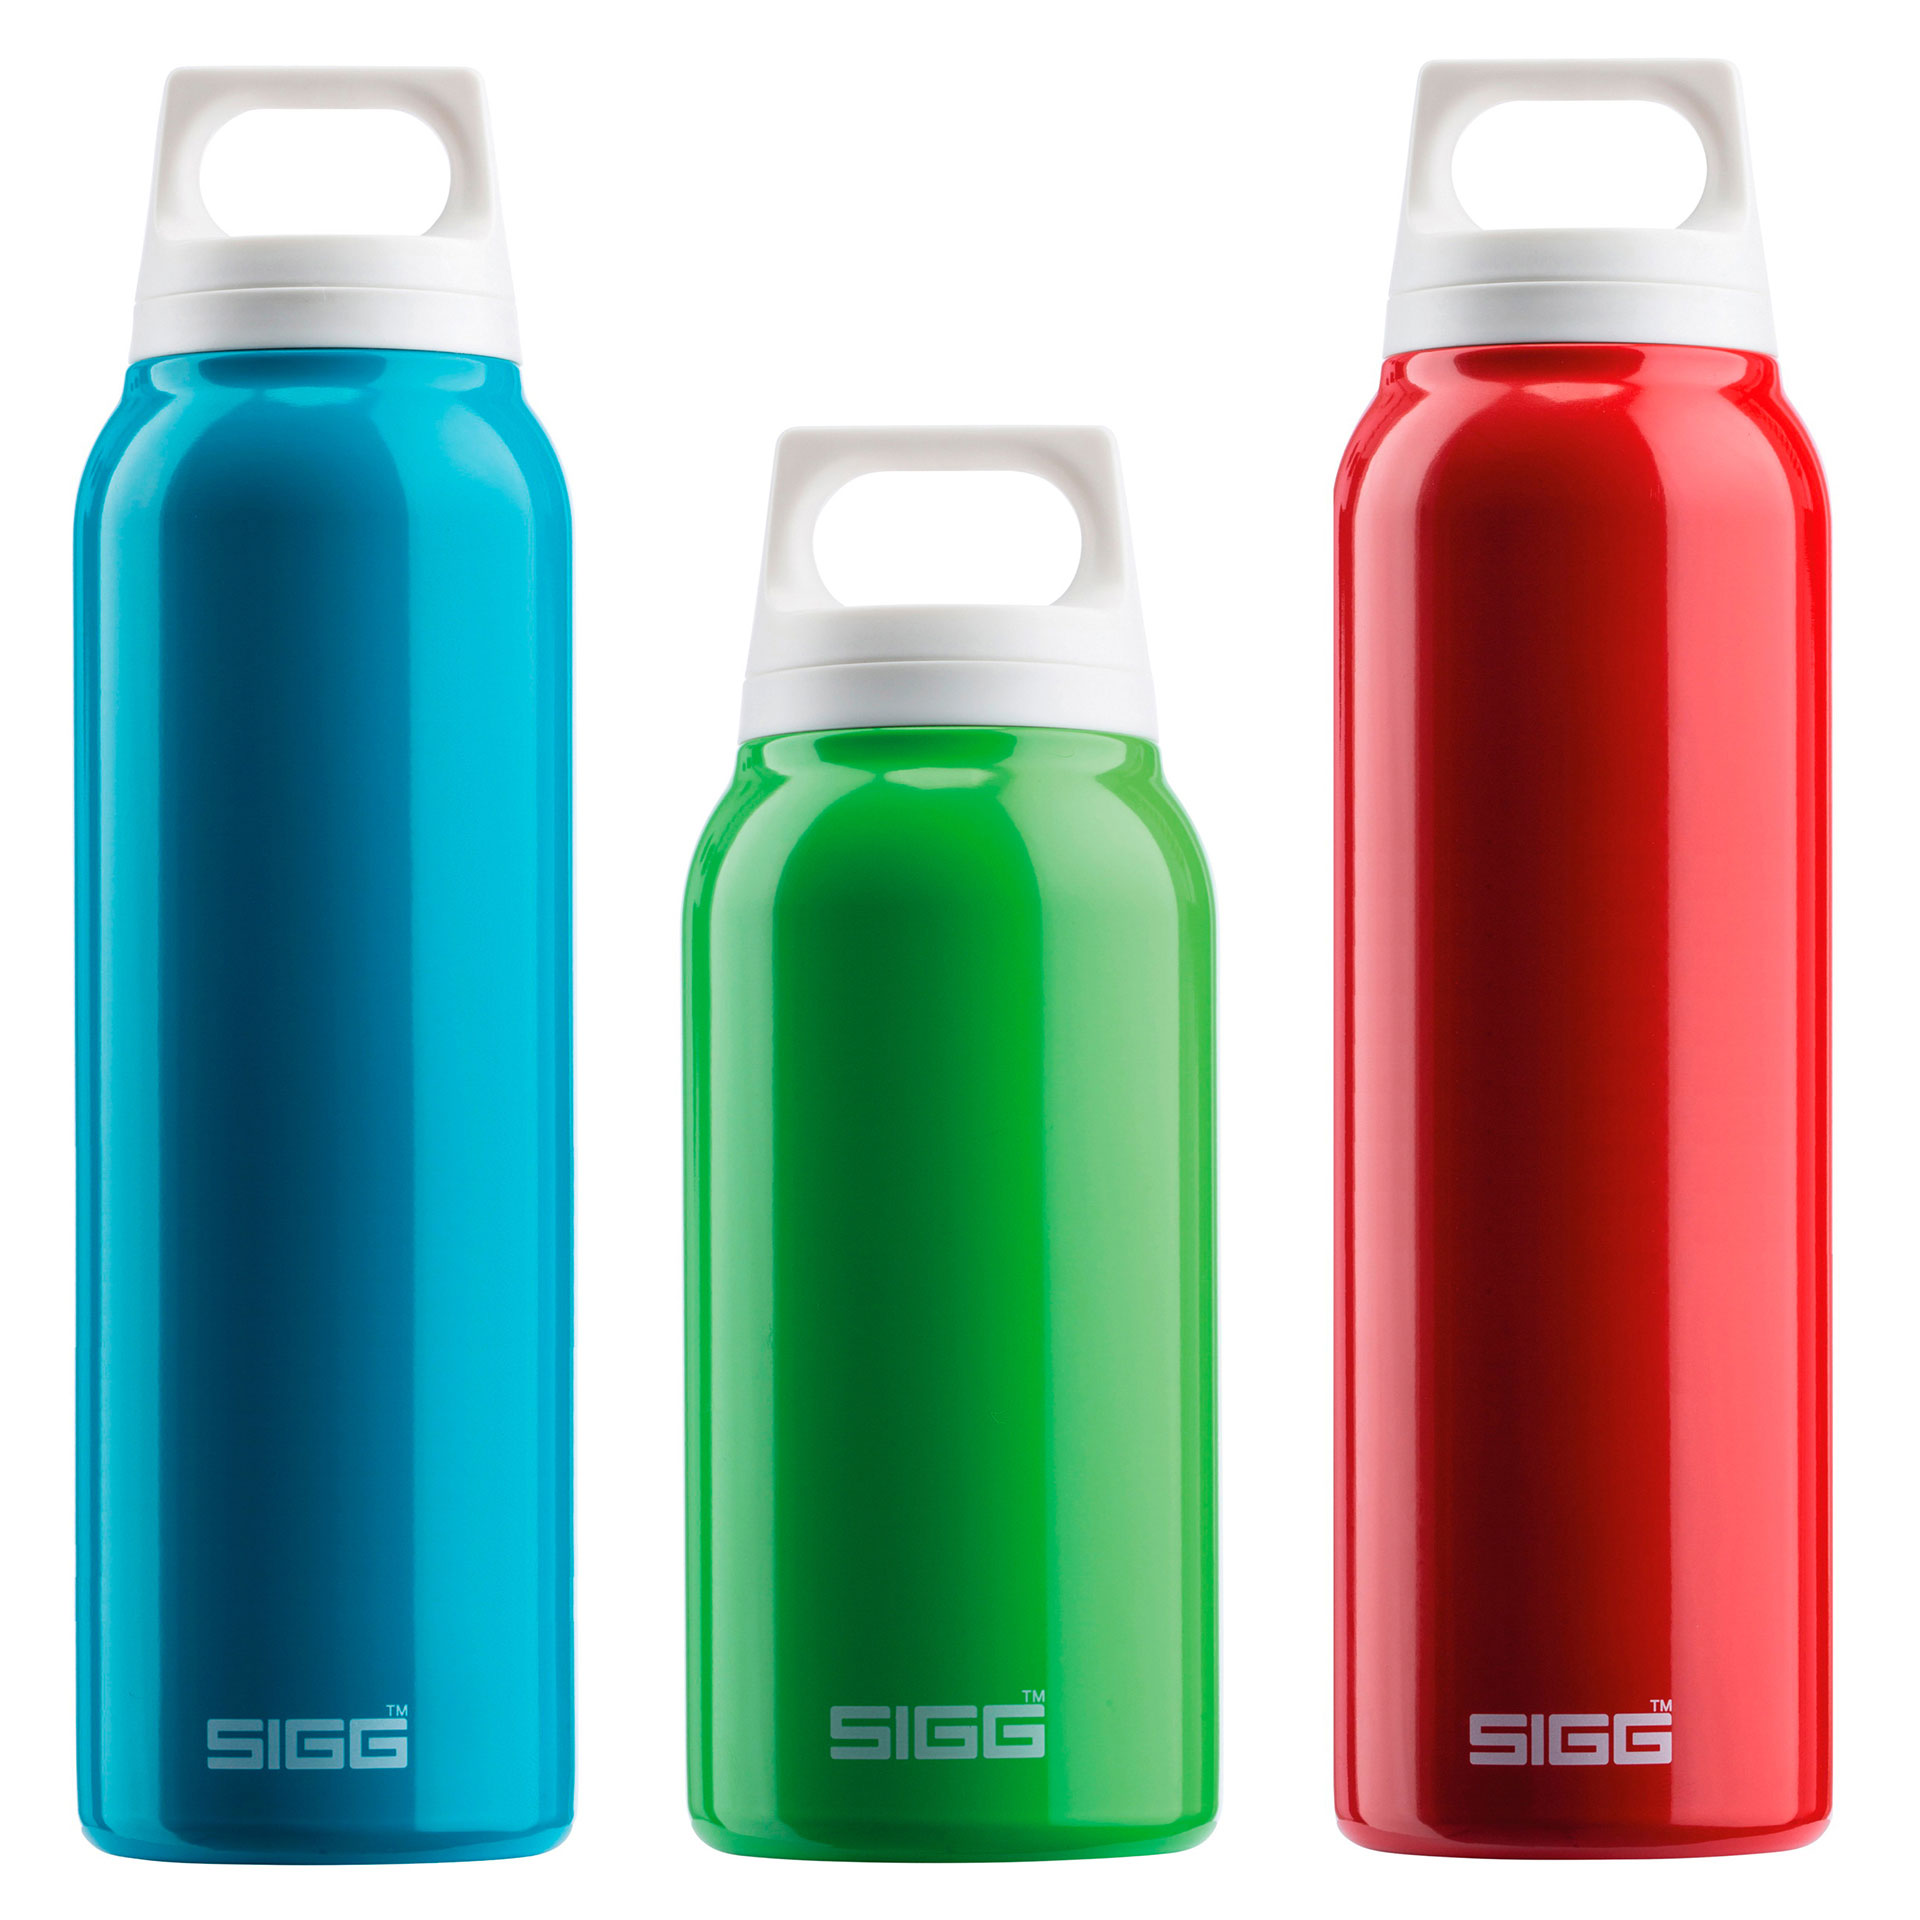 CLRFLXS® DAY 02: SIGG Hot and Cold heizt farbenfroh dem Winter ein